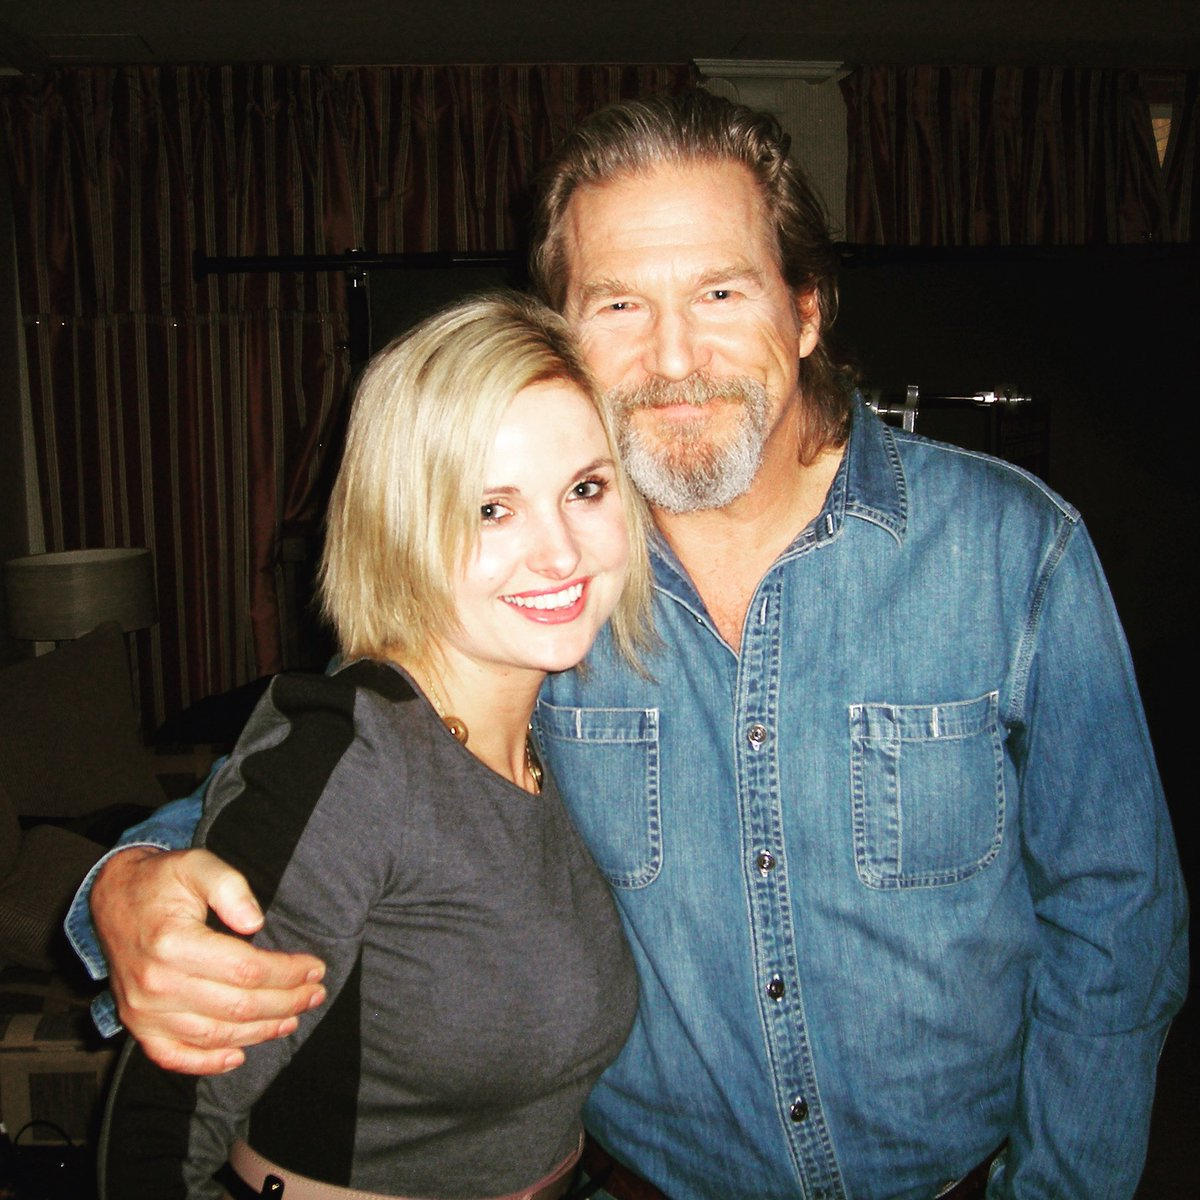 Just heard it is #nationalradioday! Seems like there is a 'day' for EVERYTHING! Thought I'd share my best and worst interviews of all time! #charisma goes to... #JeffBridges pic.twitter.com/hnqu3W6eIc